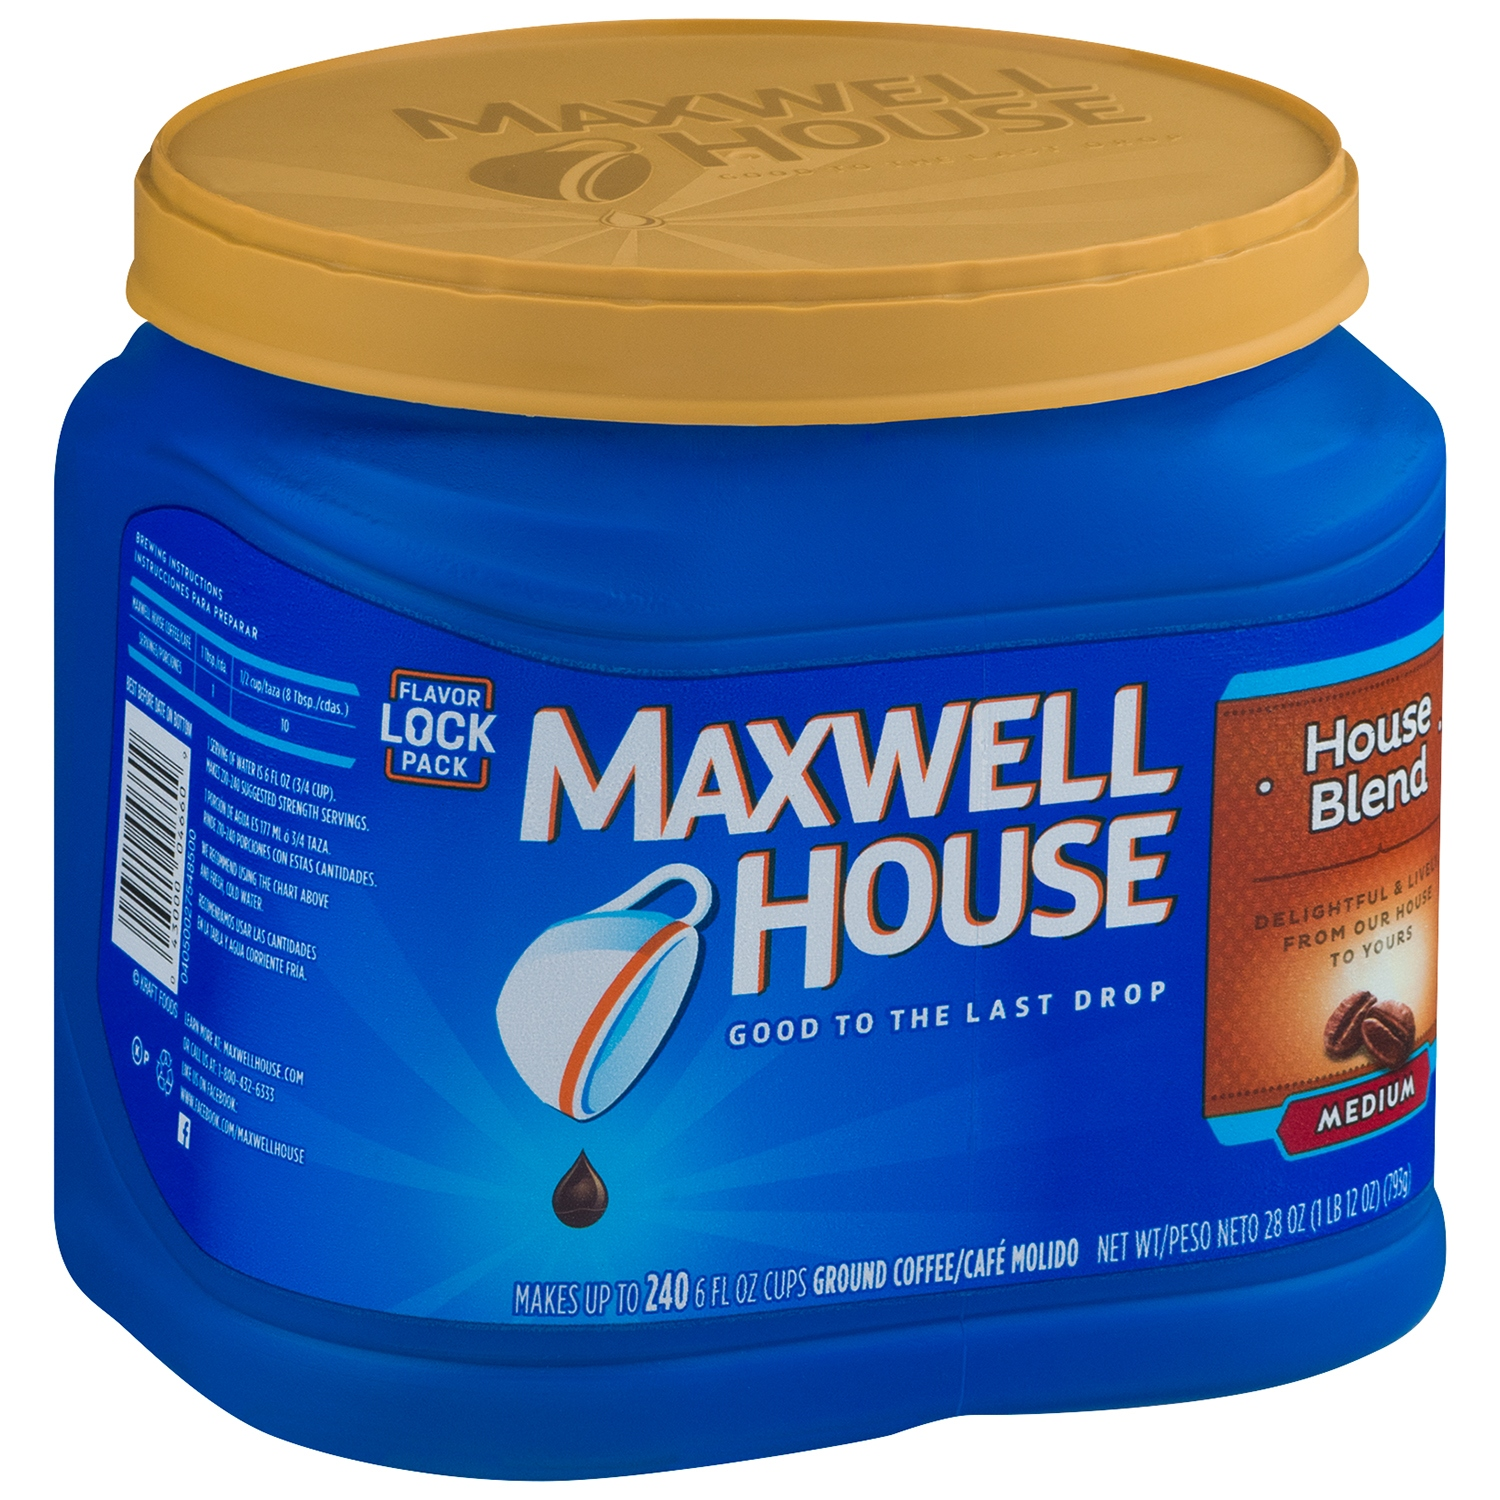 Maxwell House House Blend Medium Roast Ground Coffee, 28 OZ (793g) Tub